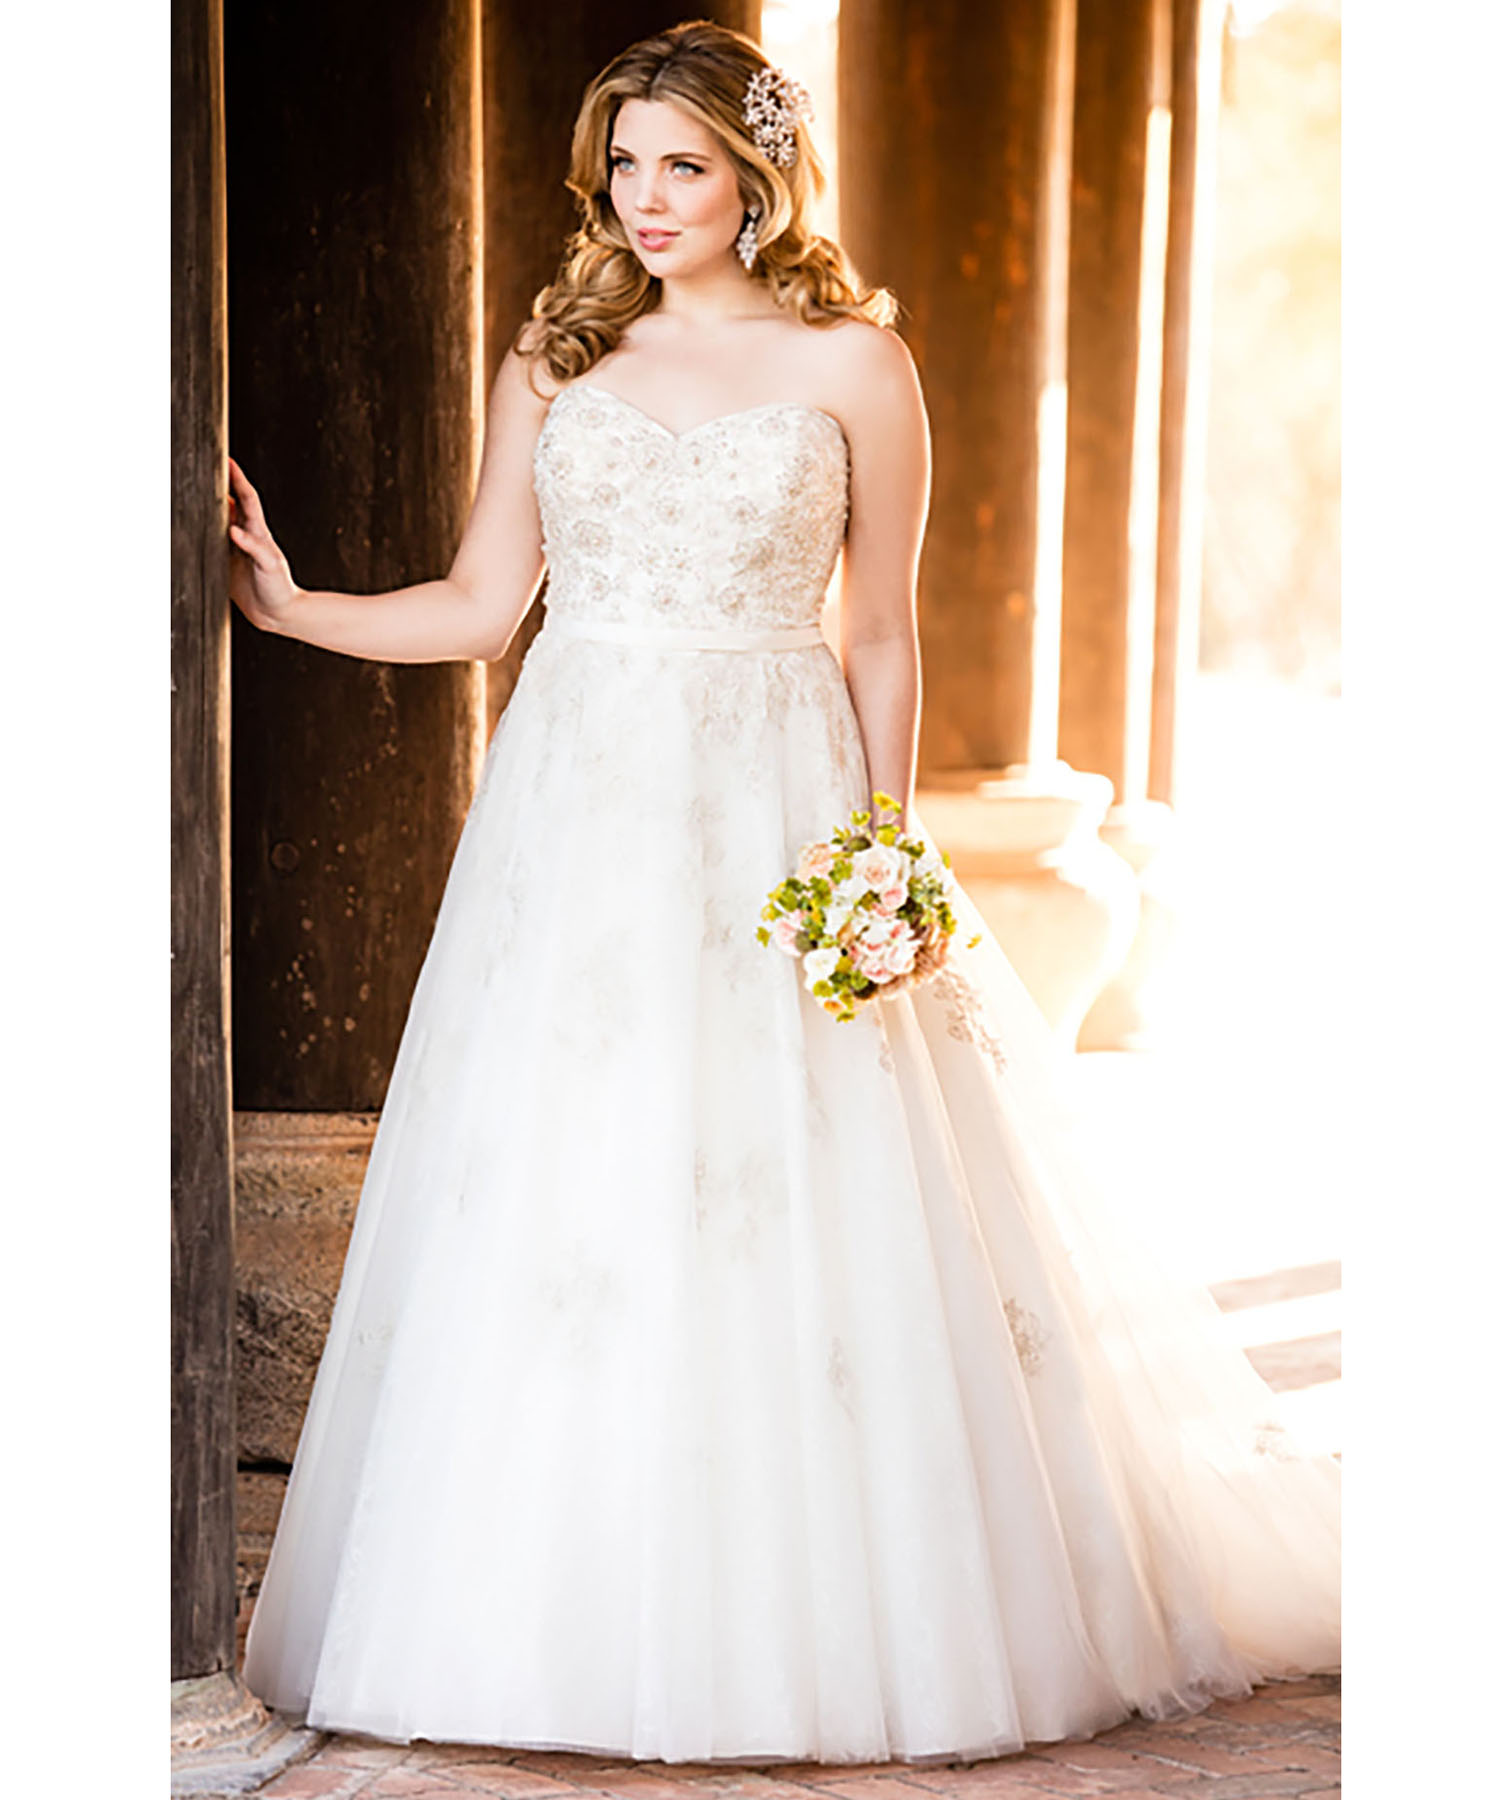 Stella York Silver Plus Size Wedding Dress